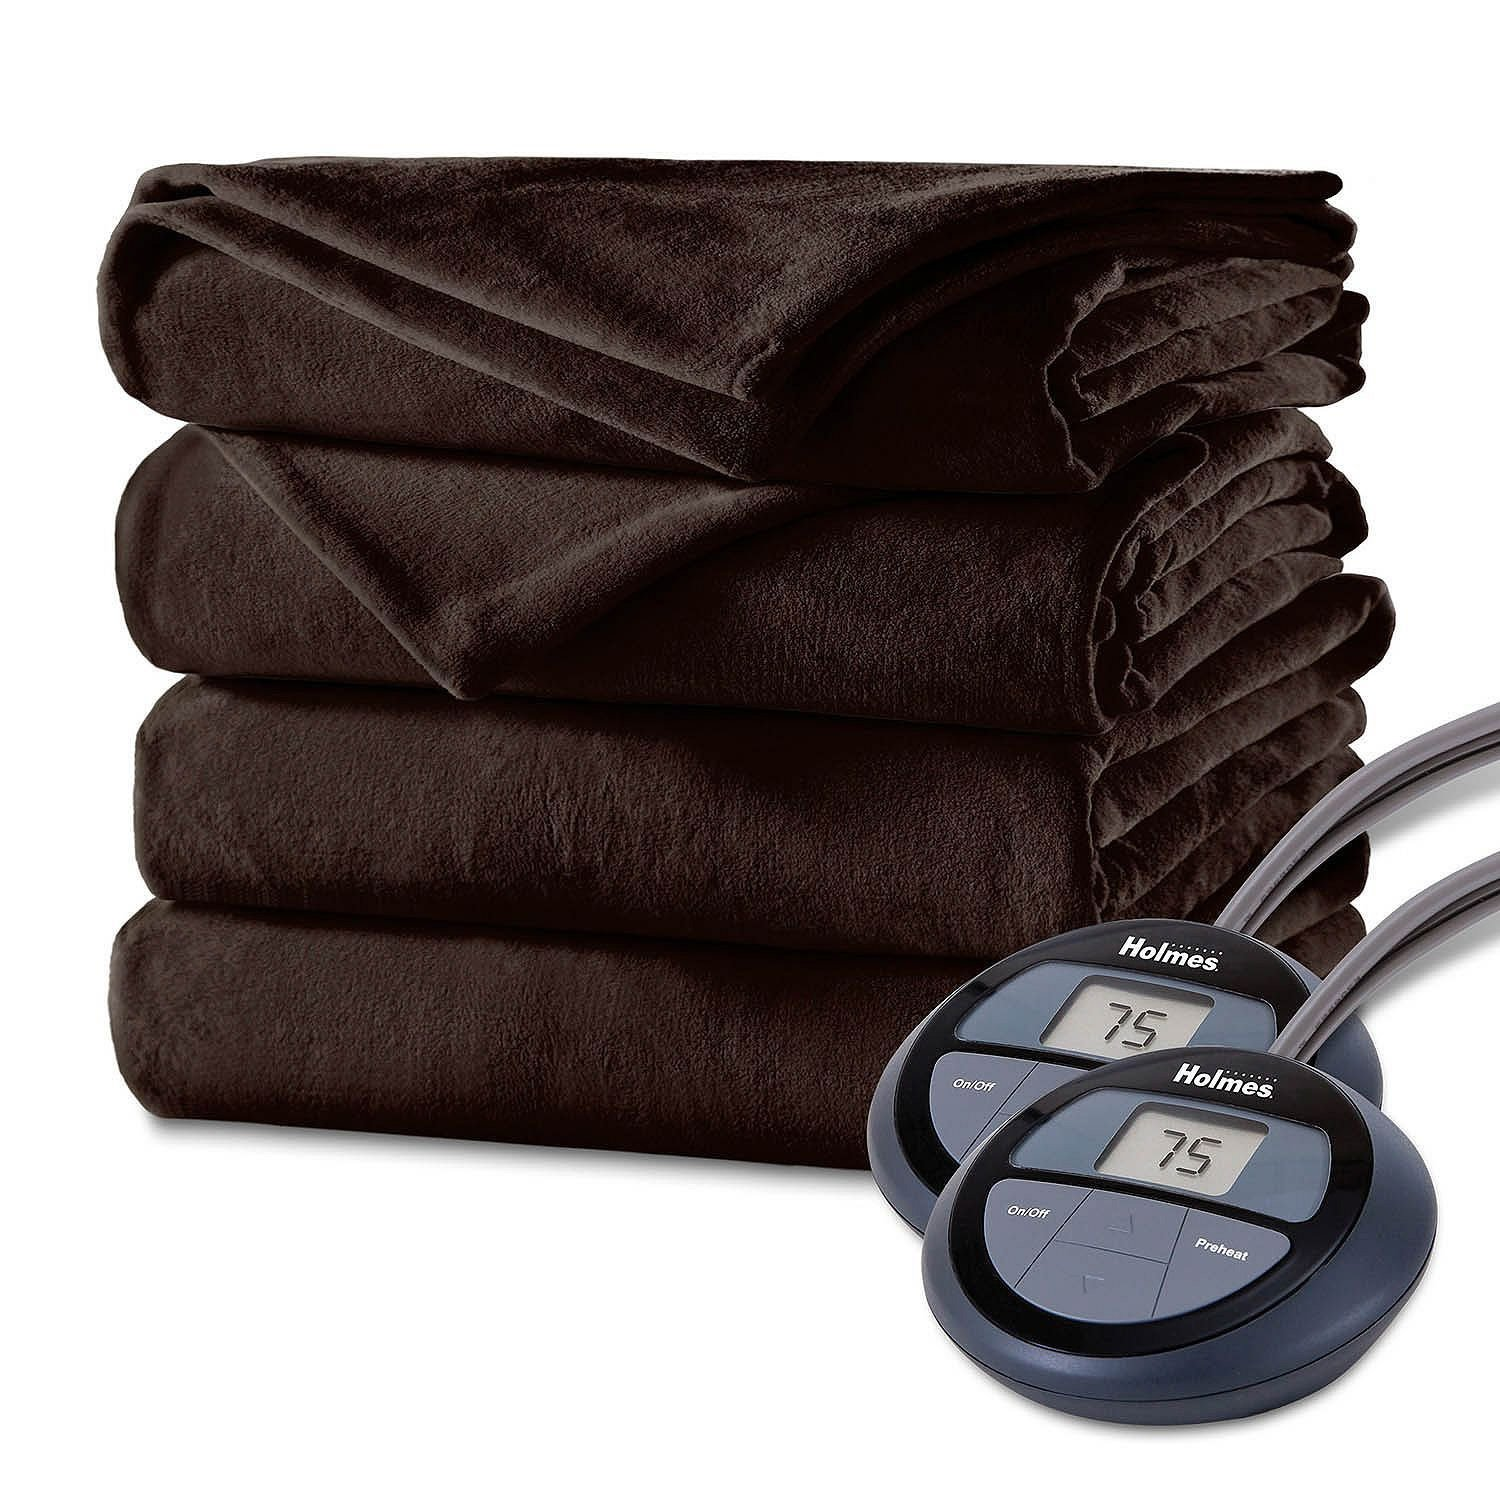 Holmes Luxury Velvet Plush Heated Blanket (Various Sizes and Colors) - Heated Blankets